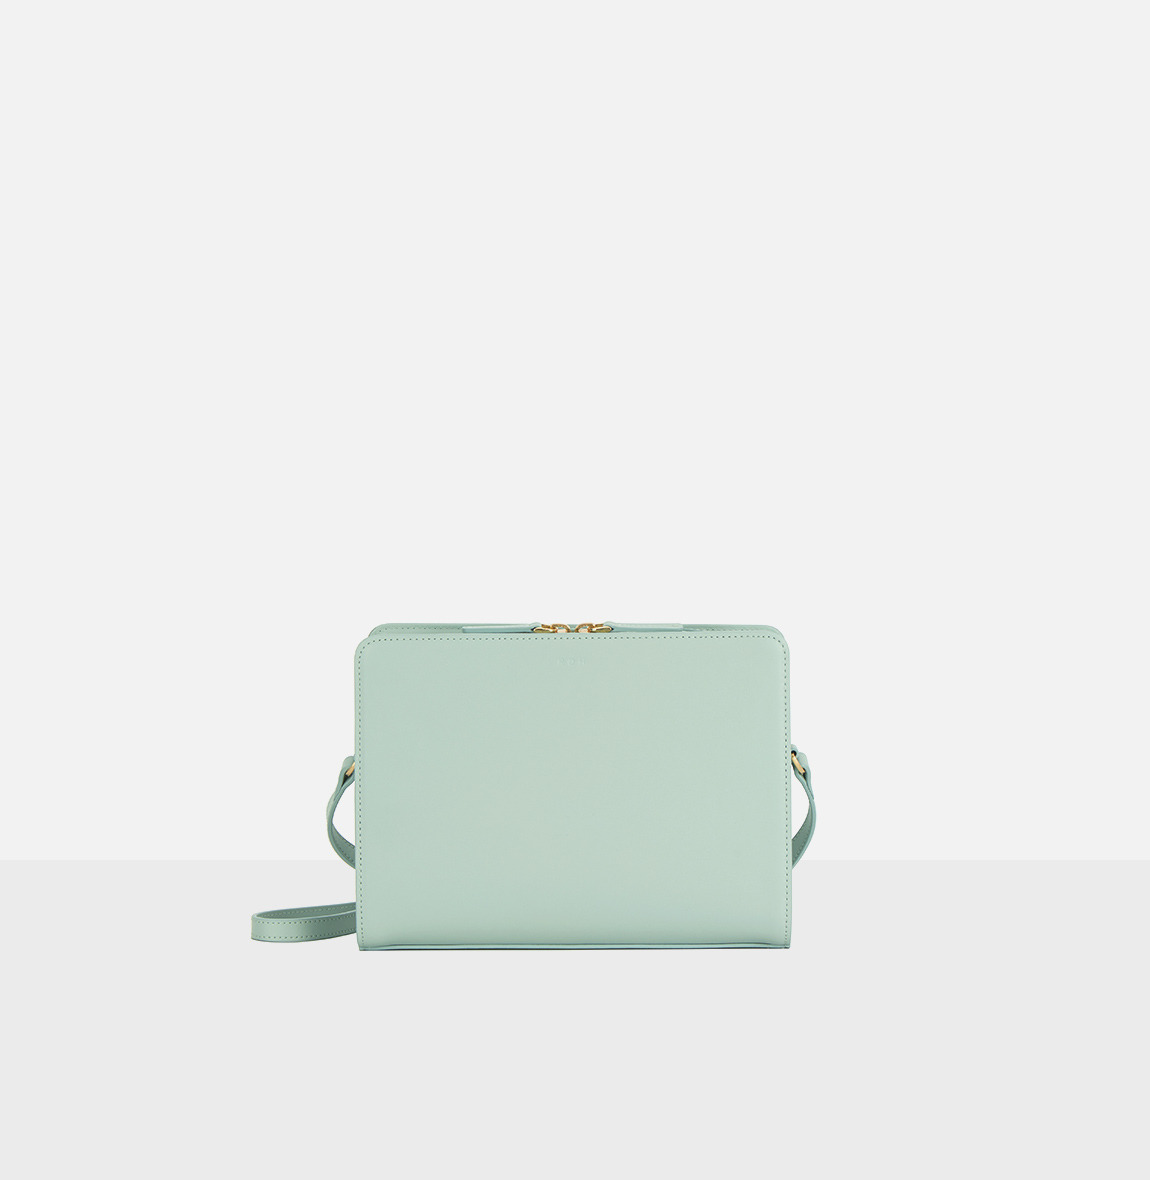 Square medium shoulder bag Dusty Mint